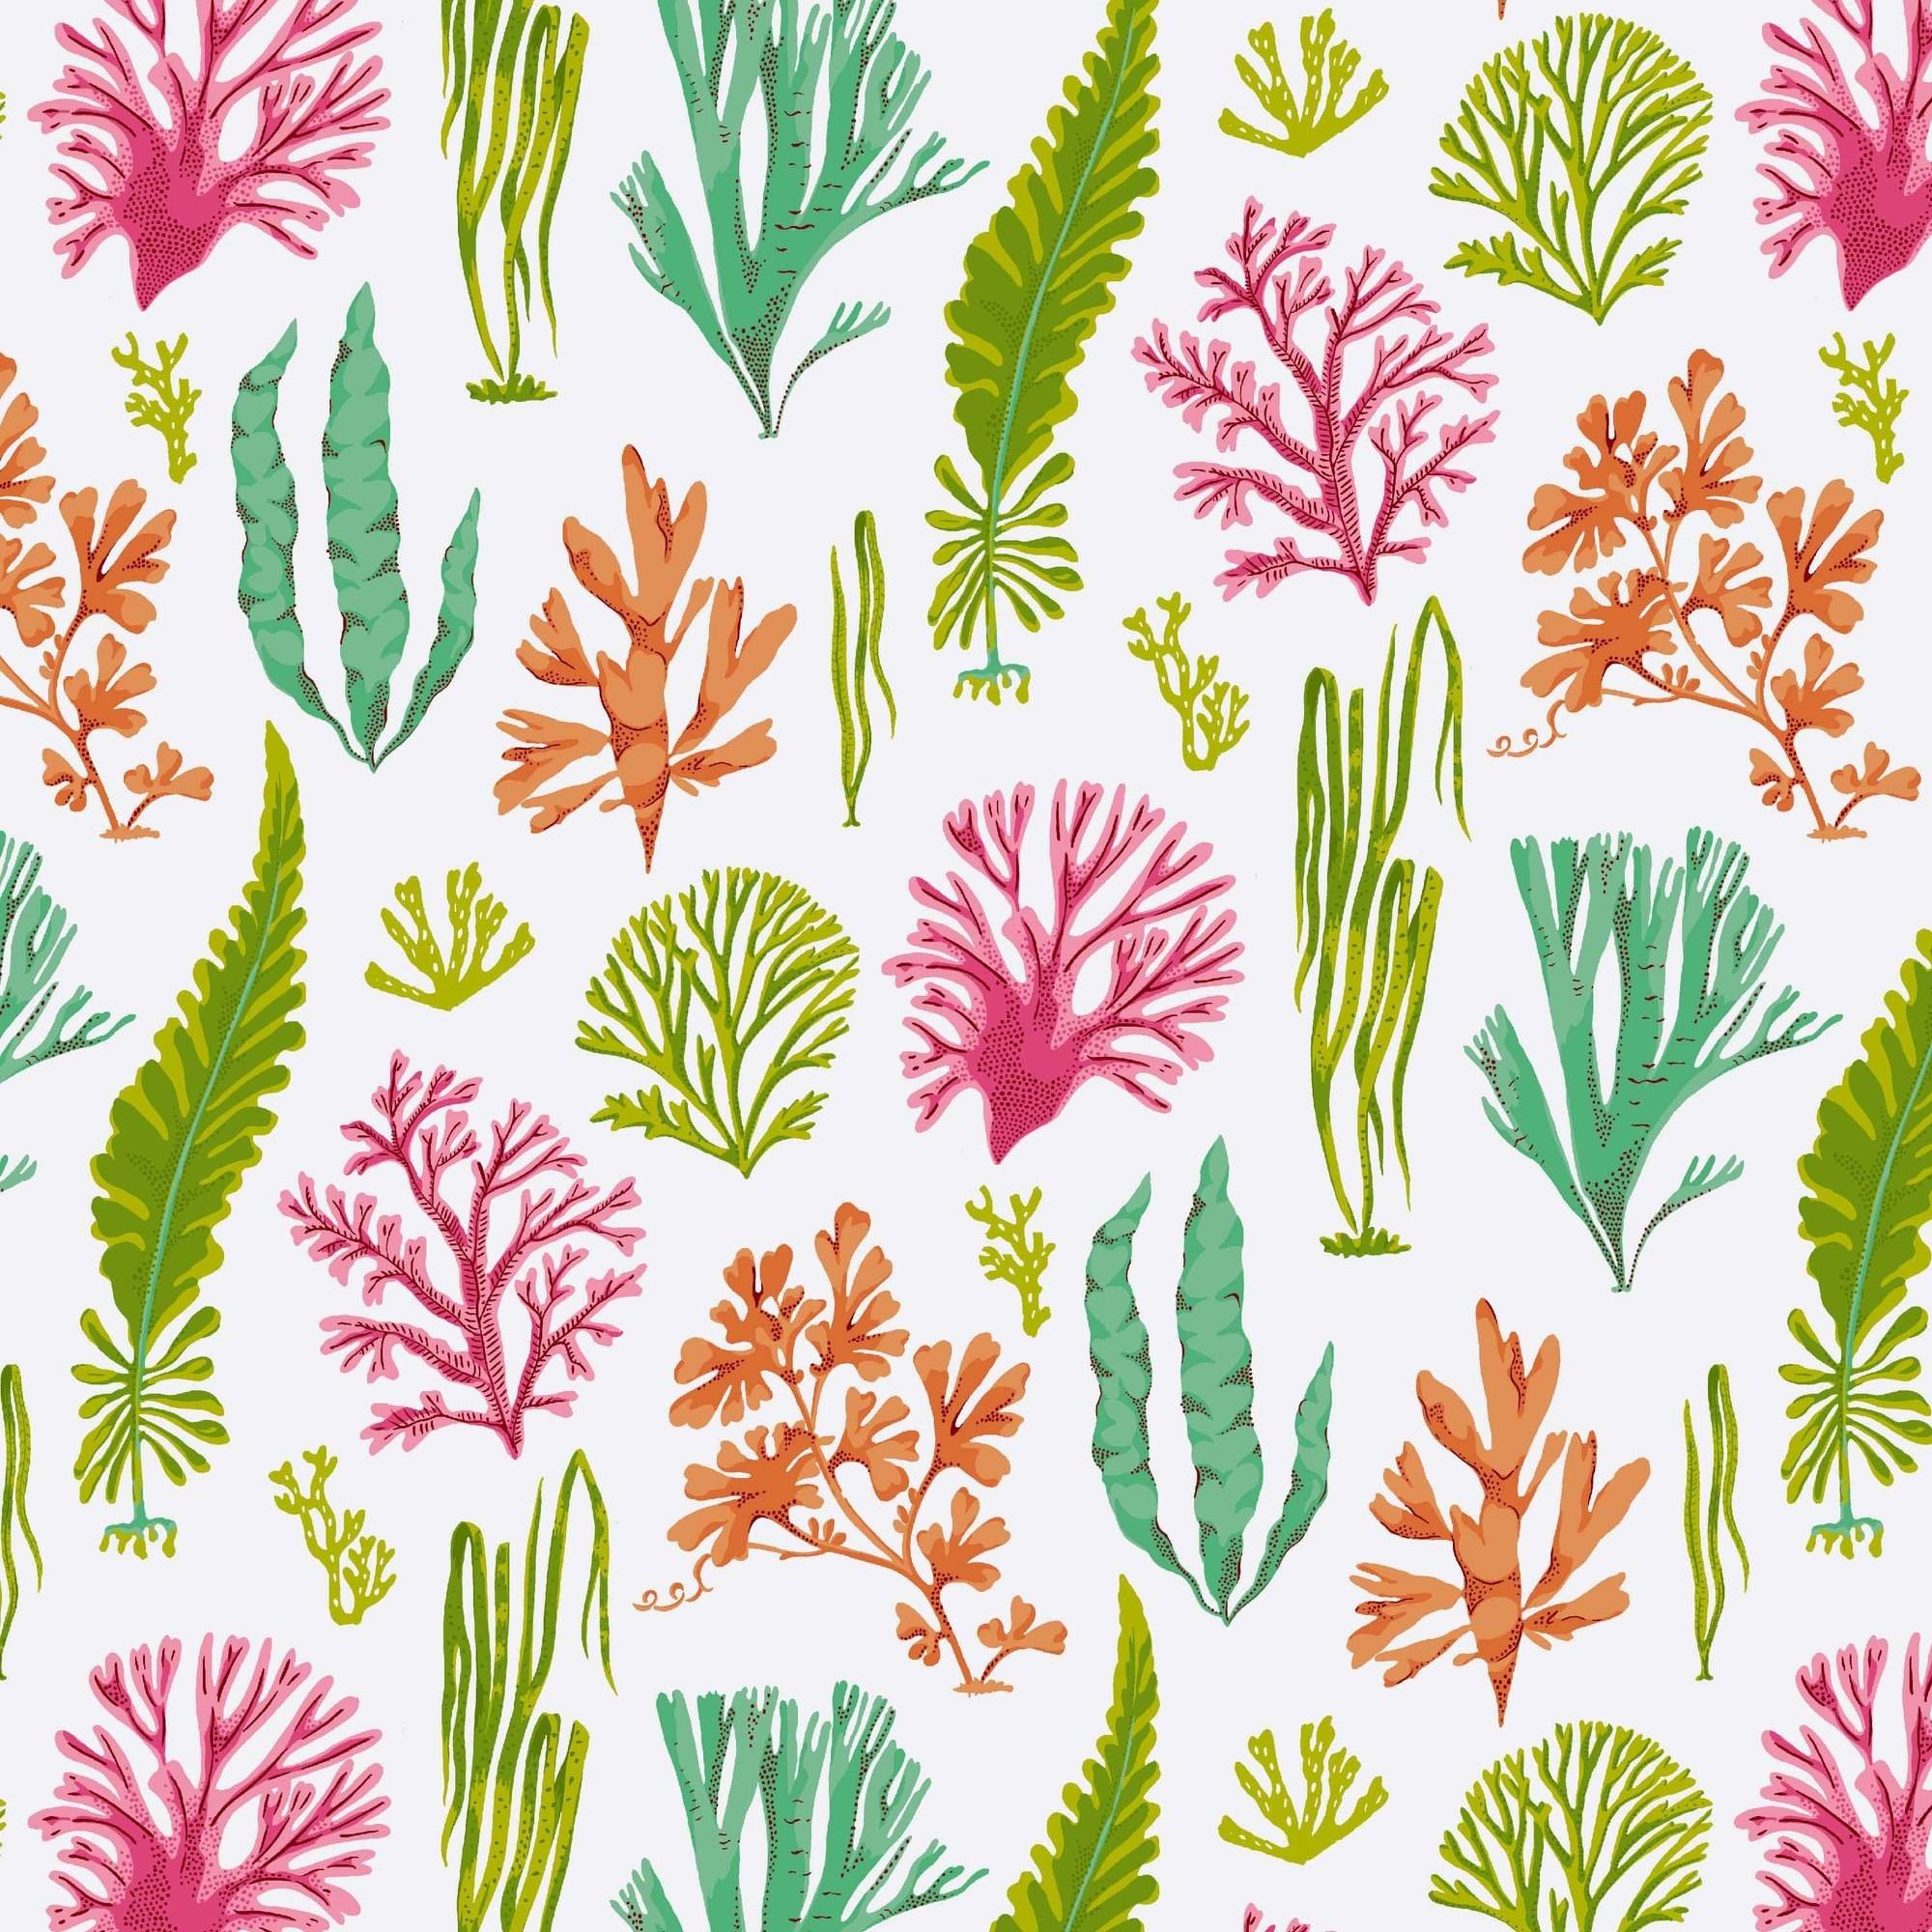 Waverly Inspirations MOD SHELL HTPK 100% Cotton Duck Fabric 45'' Wide, 180 Gsm, Quilt Crafts Cut By The Yard